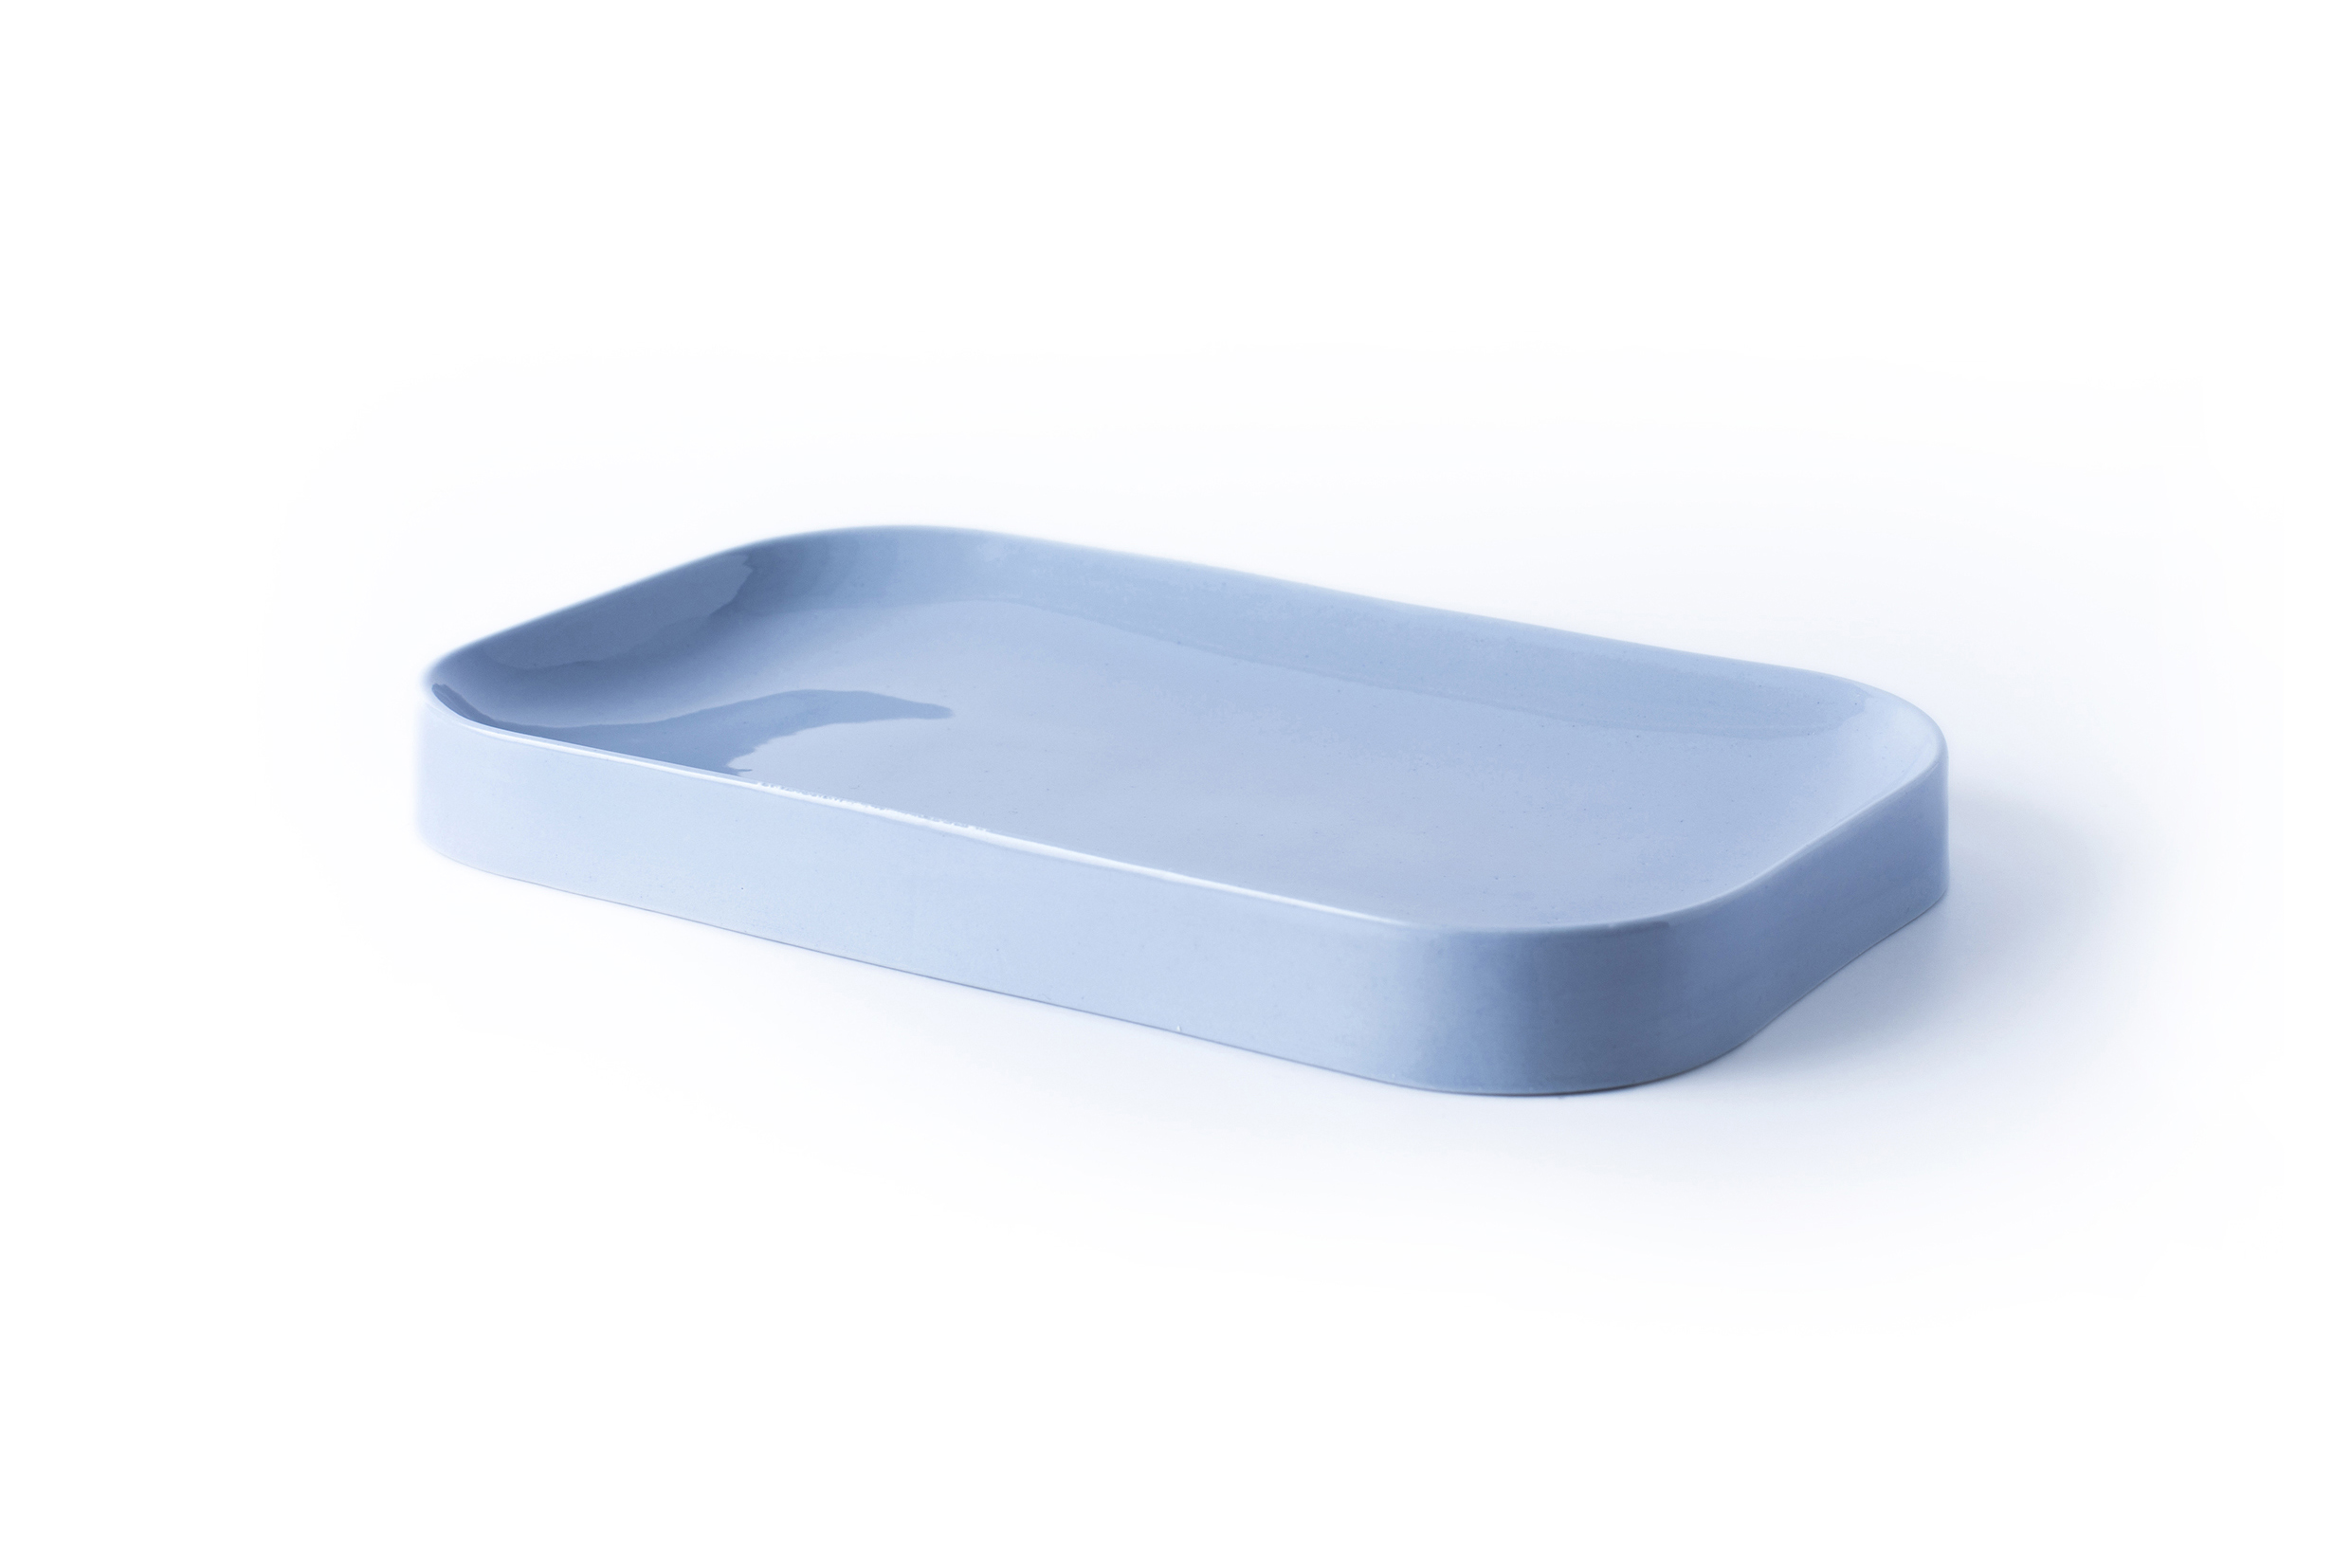 Blue Jade Plate - Light